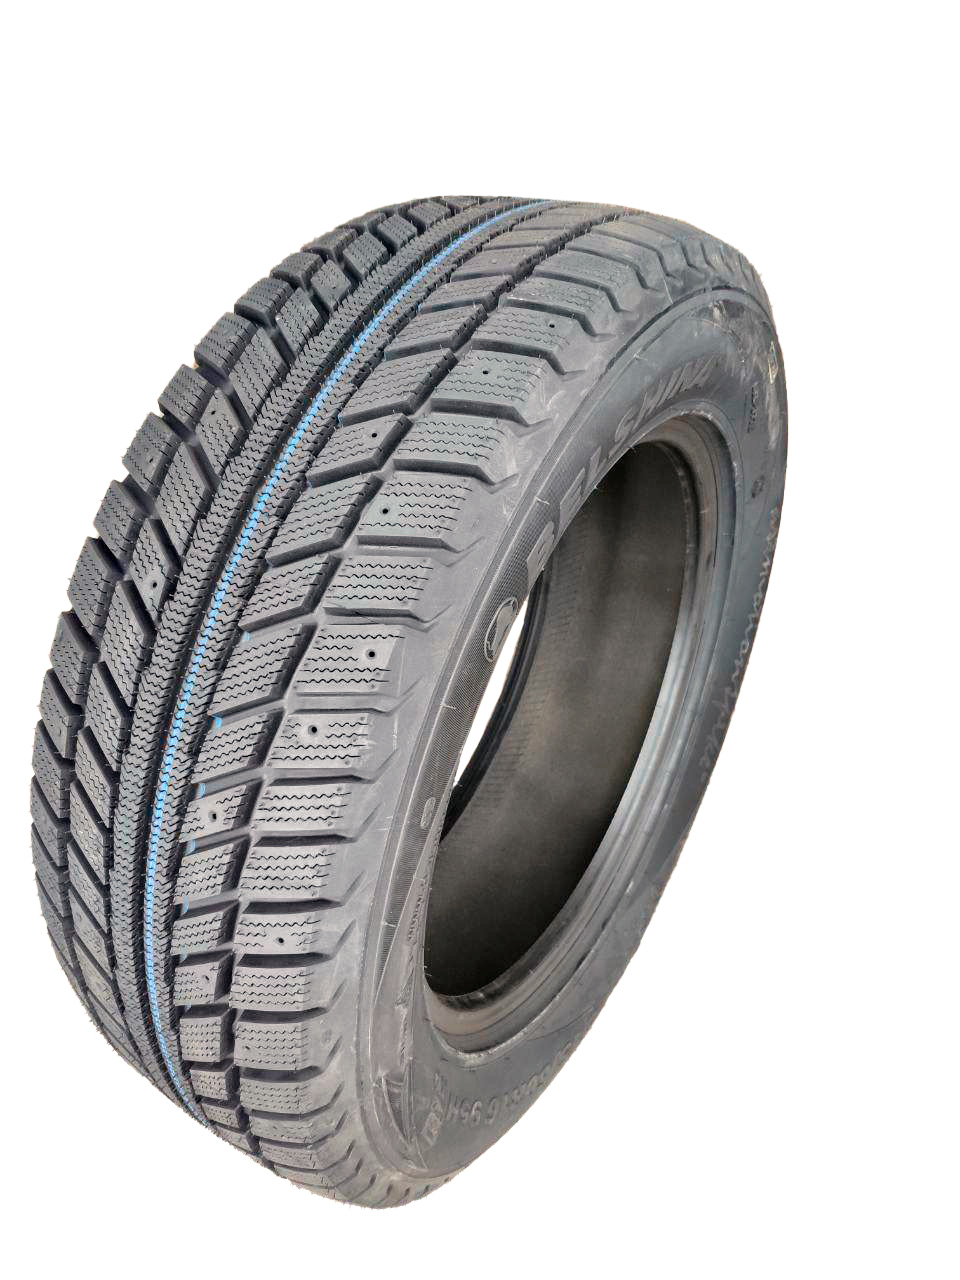 Белшина Бел-337S ArtMotion Spike 195/65 R15 91T